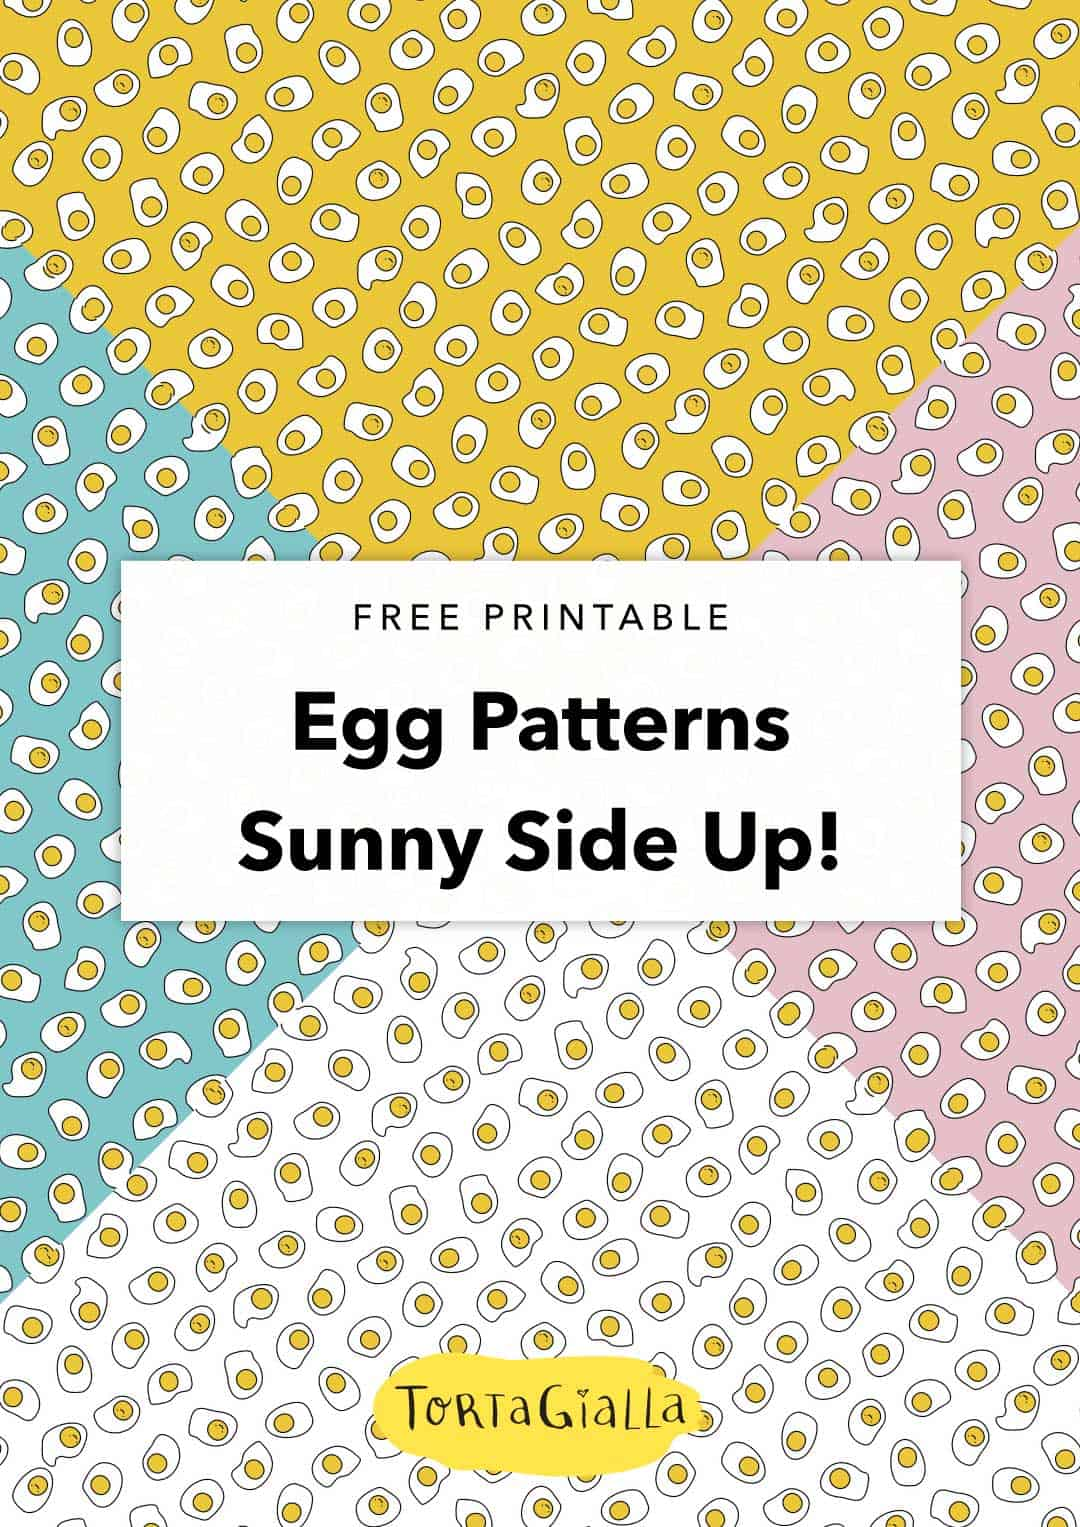 Looking for a cute scrapbook paper printable? How about this sunny side up egg design I created, super cute and bright for your papercrafting projects.